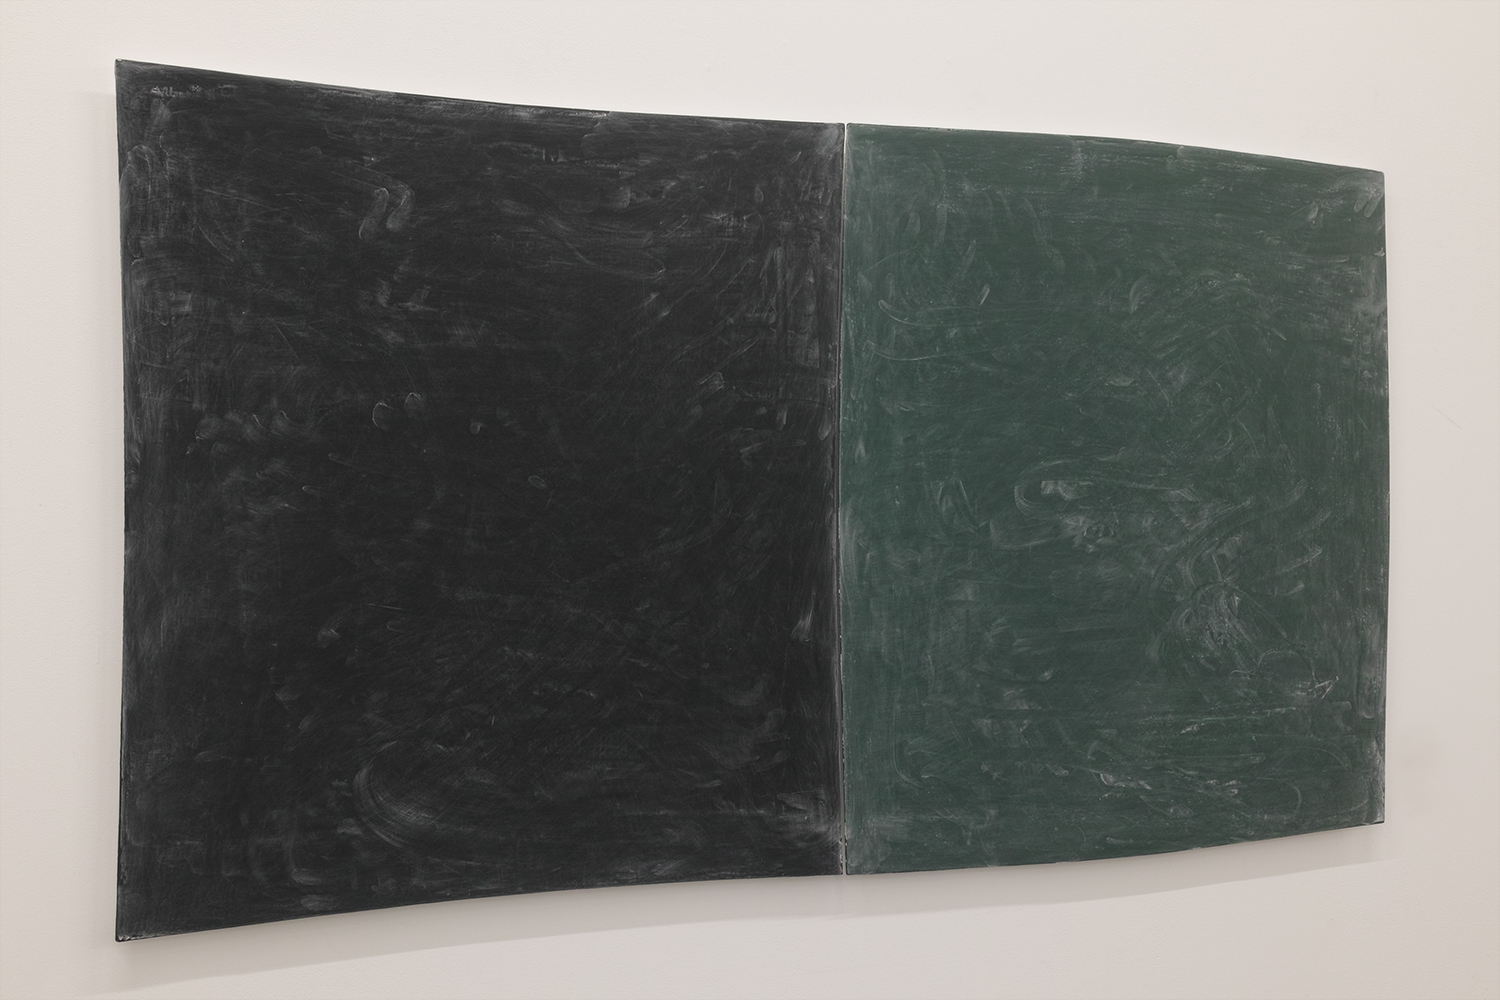 Drawing boards|Black board paint and chalkon panel |750 x 750 x 20, 770 x 770 x 20 mm|2020